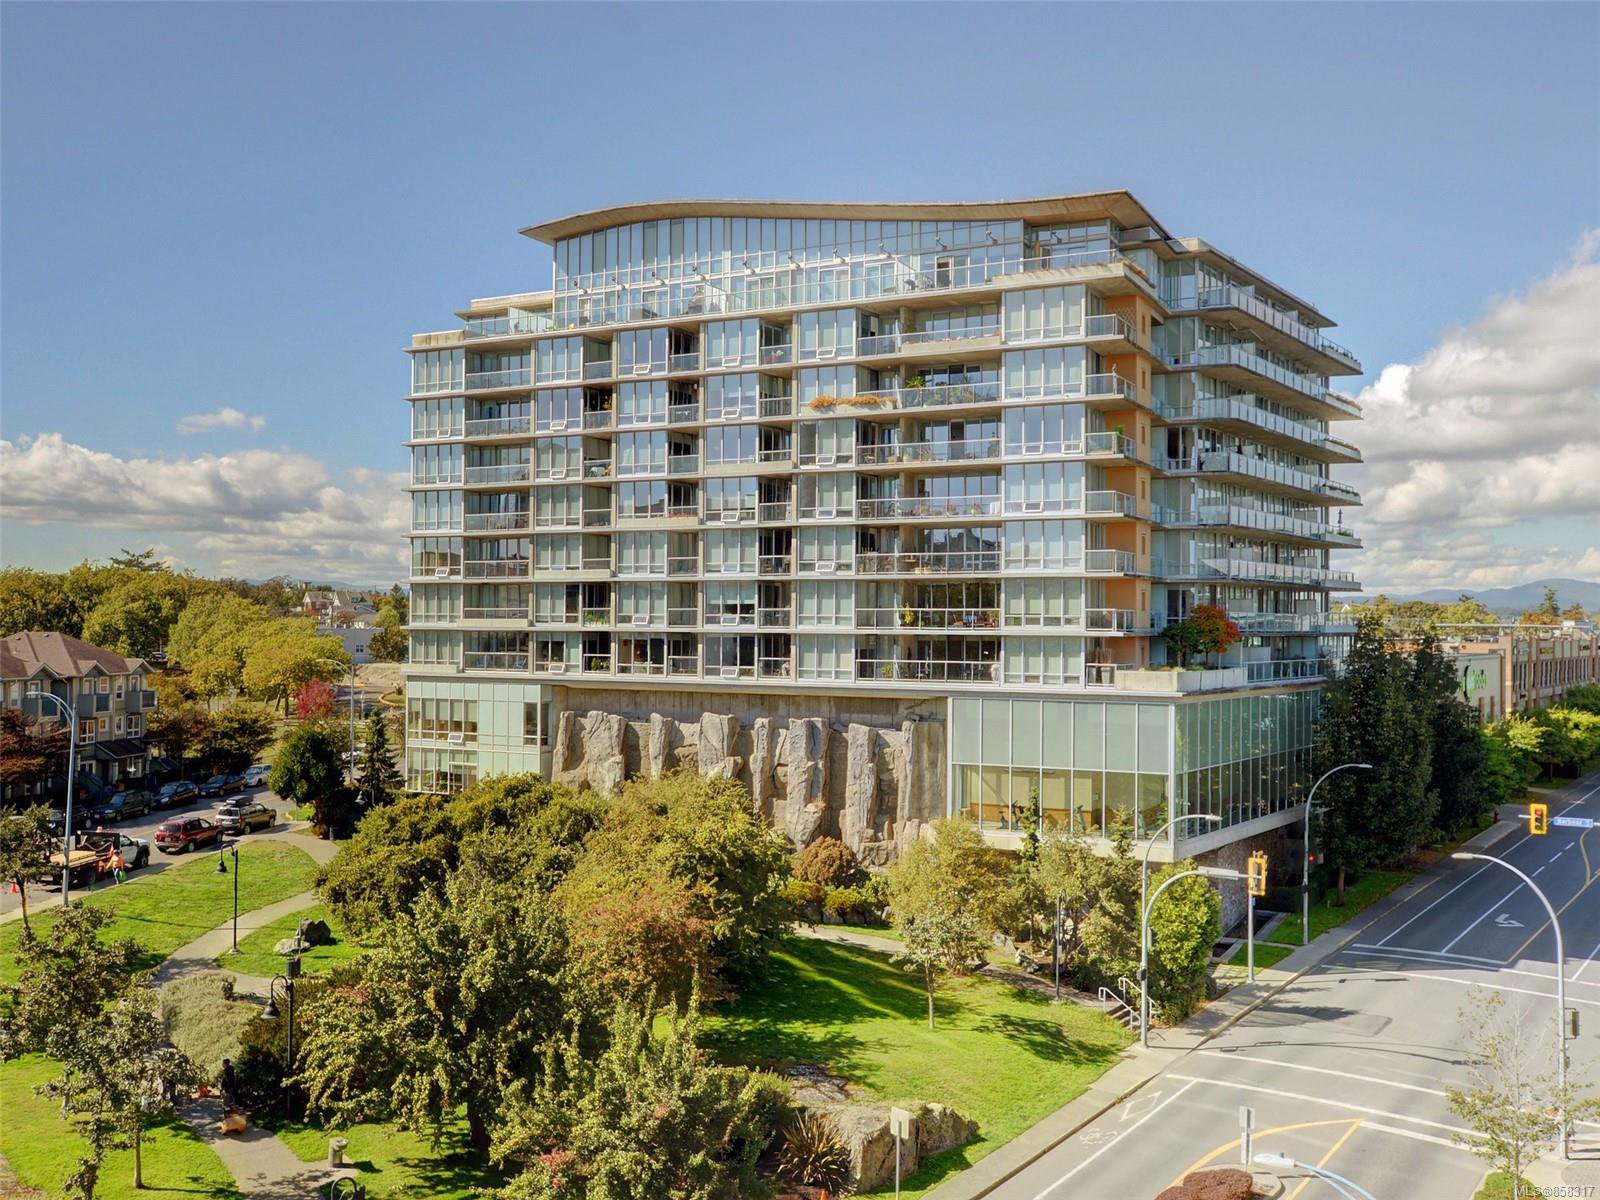 Main Photo: 1014 160 Wilson St in : VW Victoria West Condo for sale (Victoria West)  : MLS®# 858317